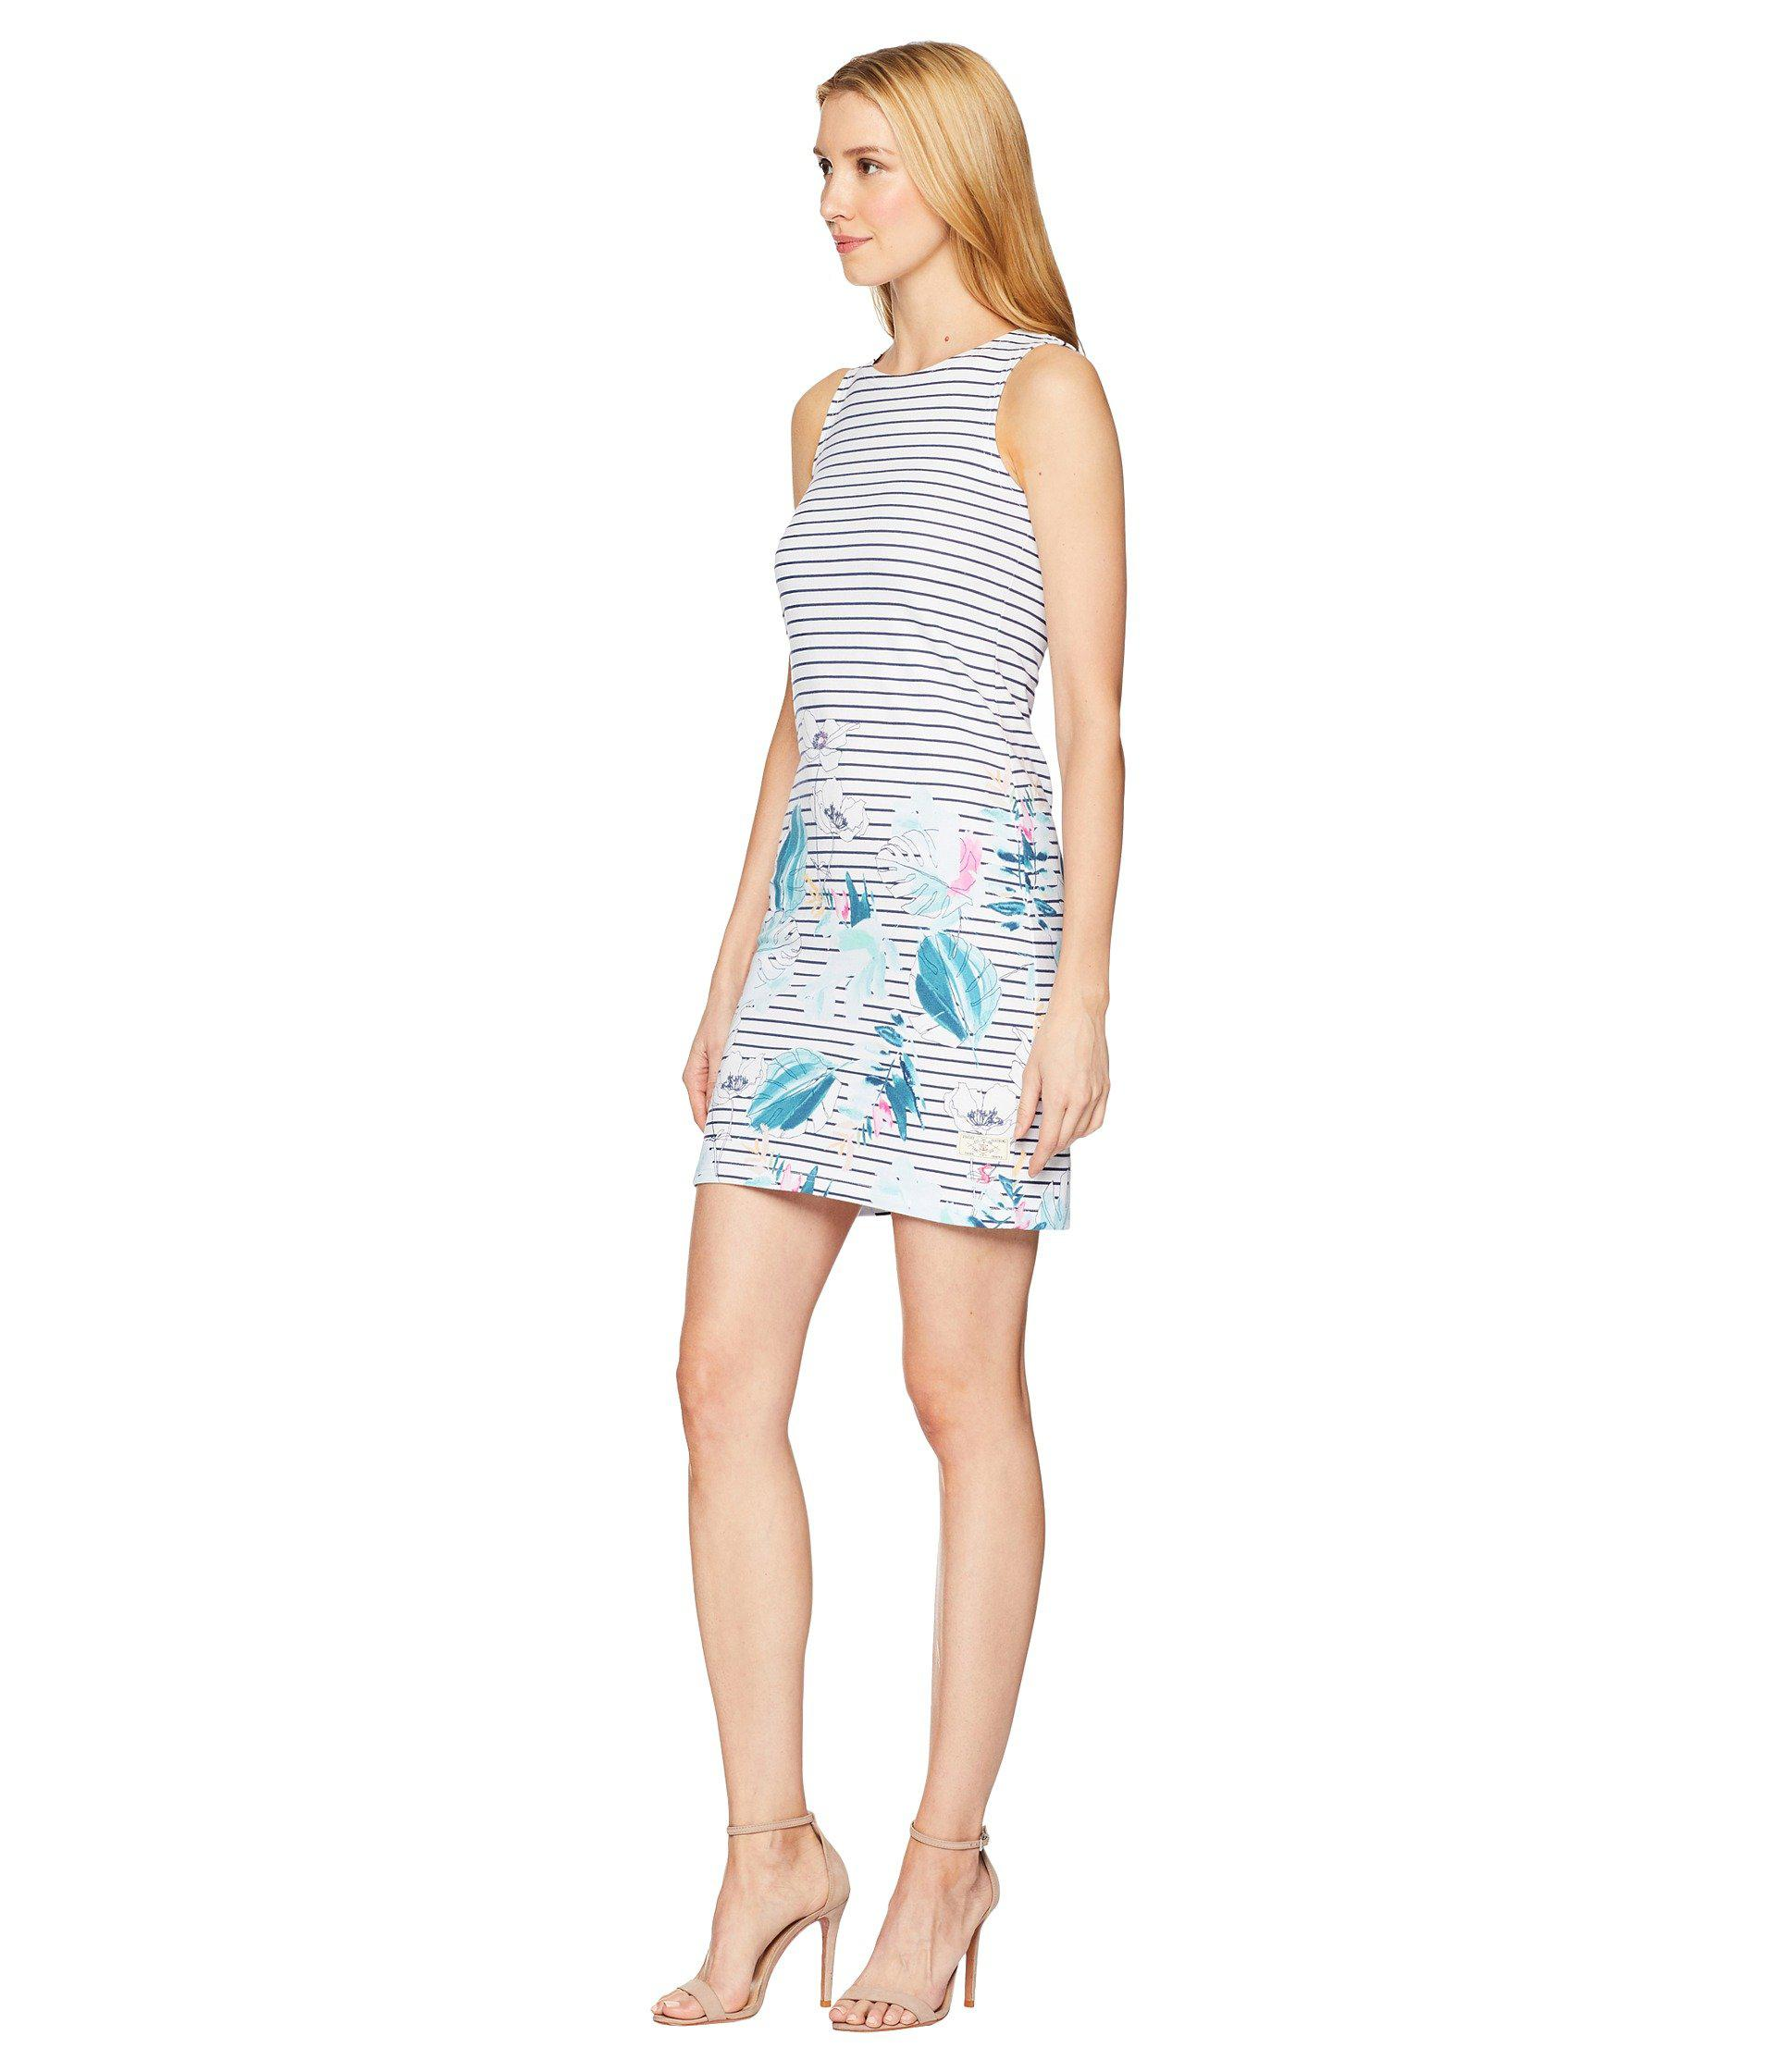 bed39390644 Joules Riva Sleeveless Printed Jersey Dress in Blue - Lyst